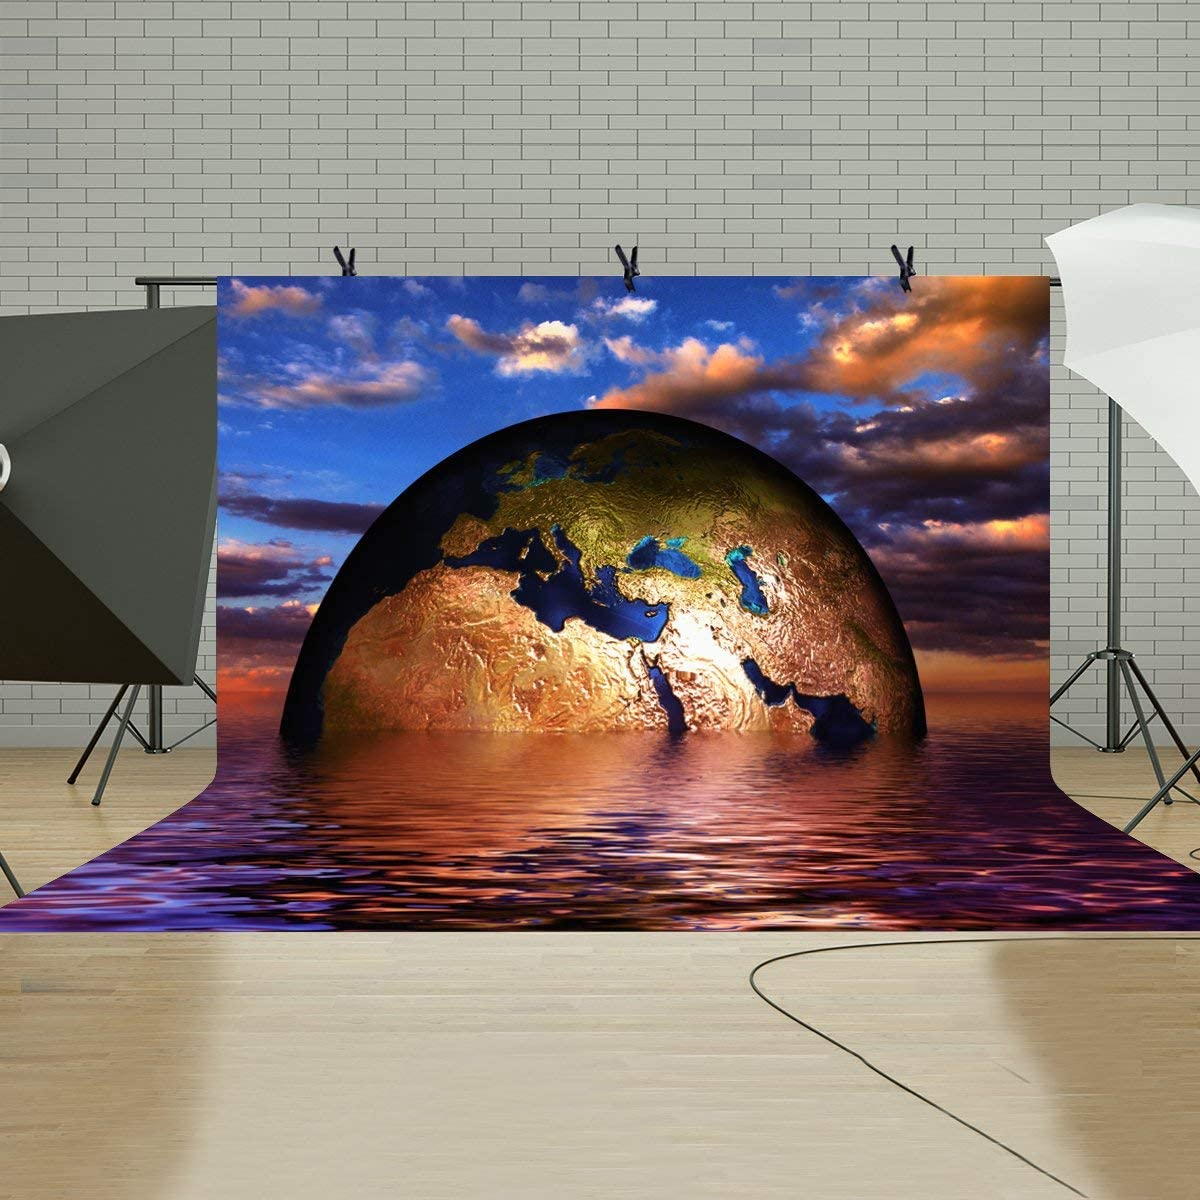 CdHBH 10x7ft Suspended Earth Backdrop Magenta Suspended Earth Fantasy Photography Background and Studio Photography Backdrop Props LYHUI123